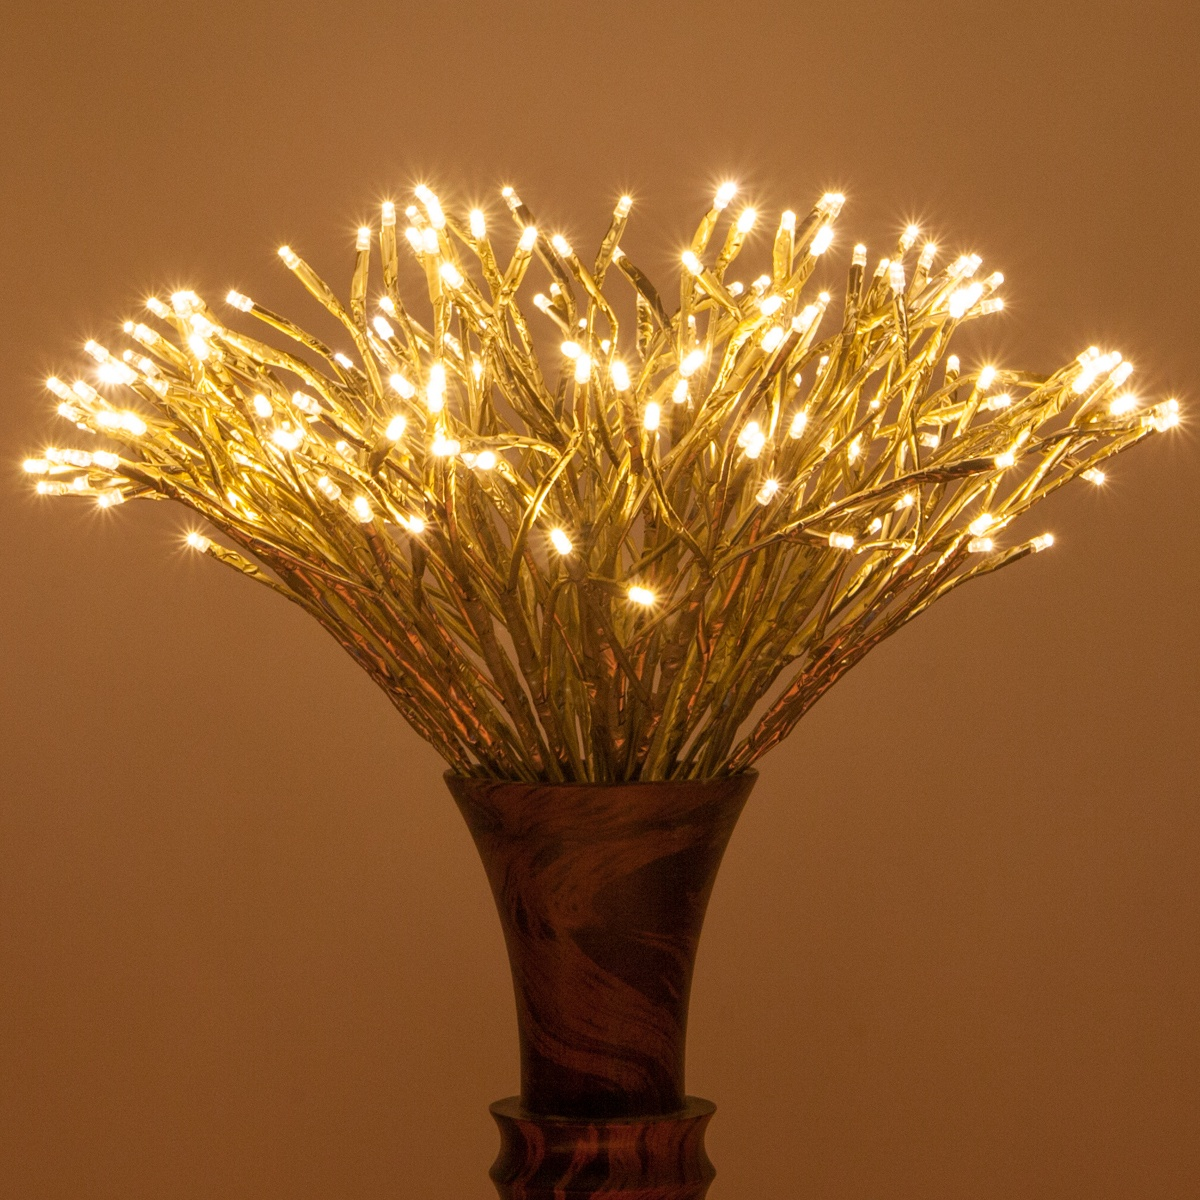 Gold Starburst Led Lighted Branches Warm White Twinkle